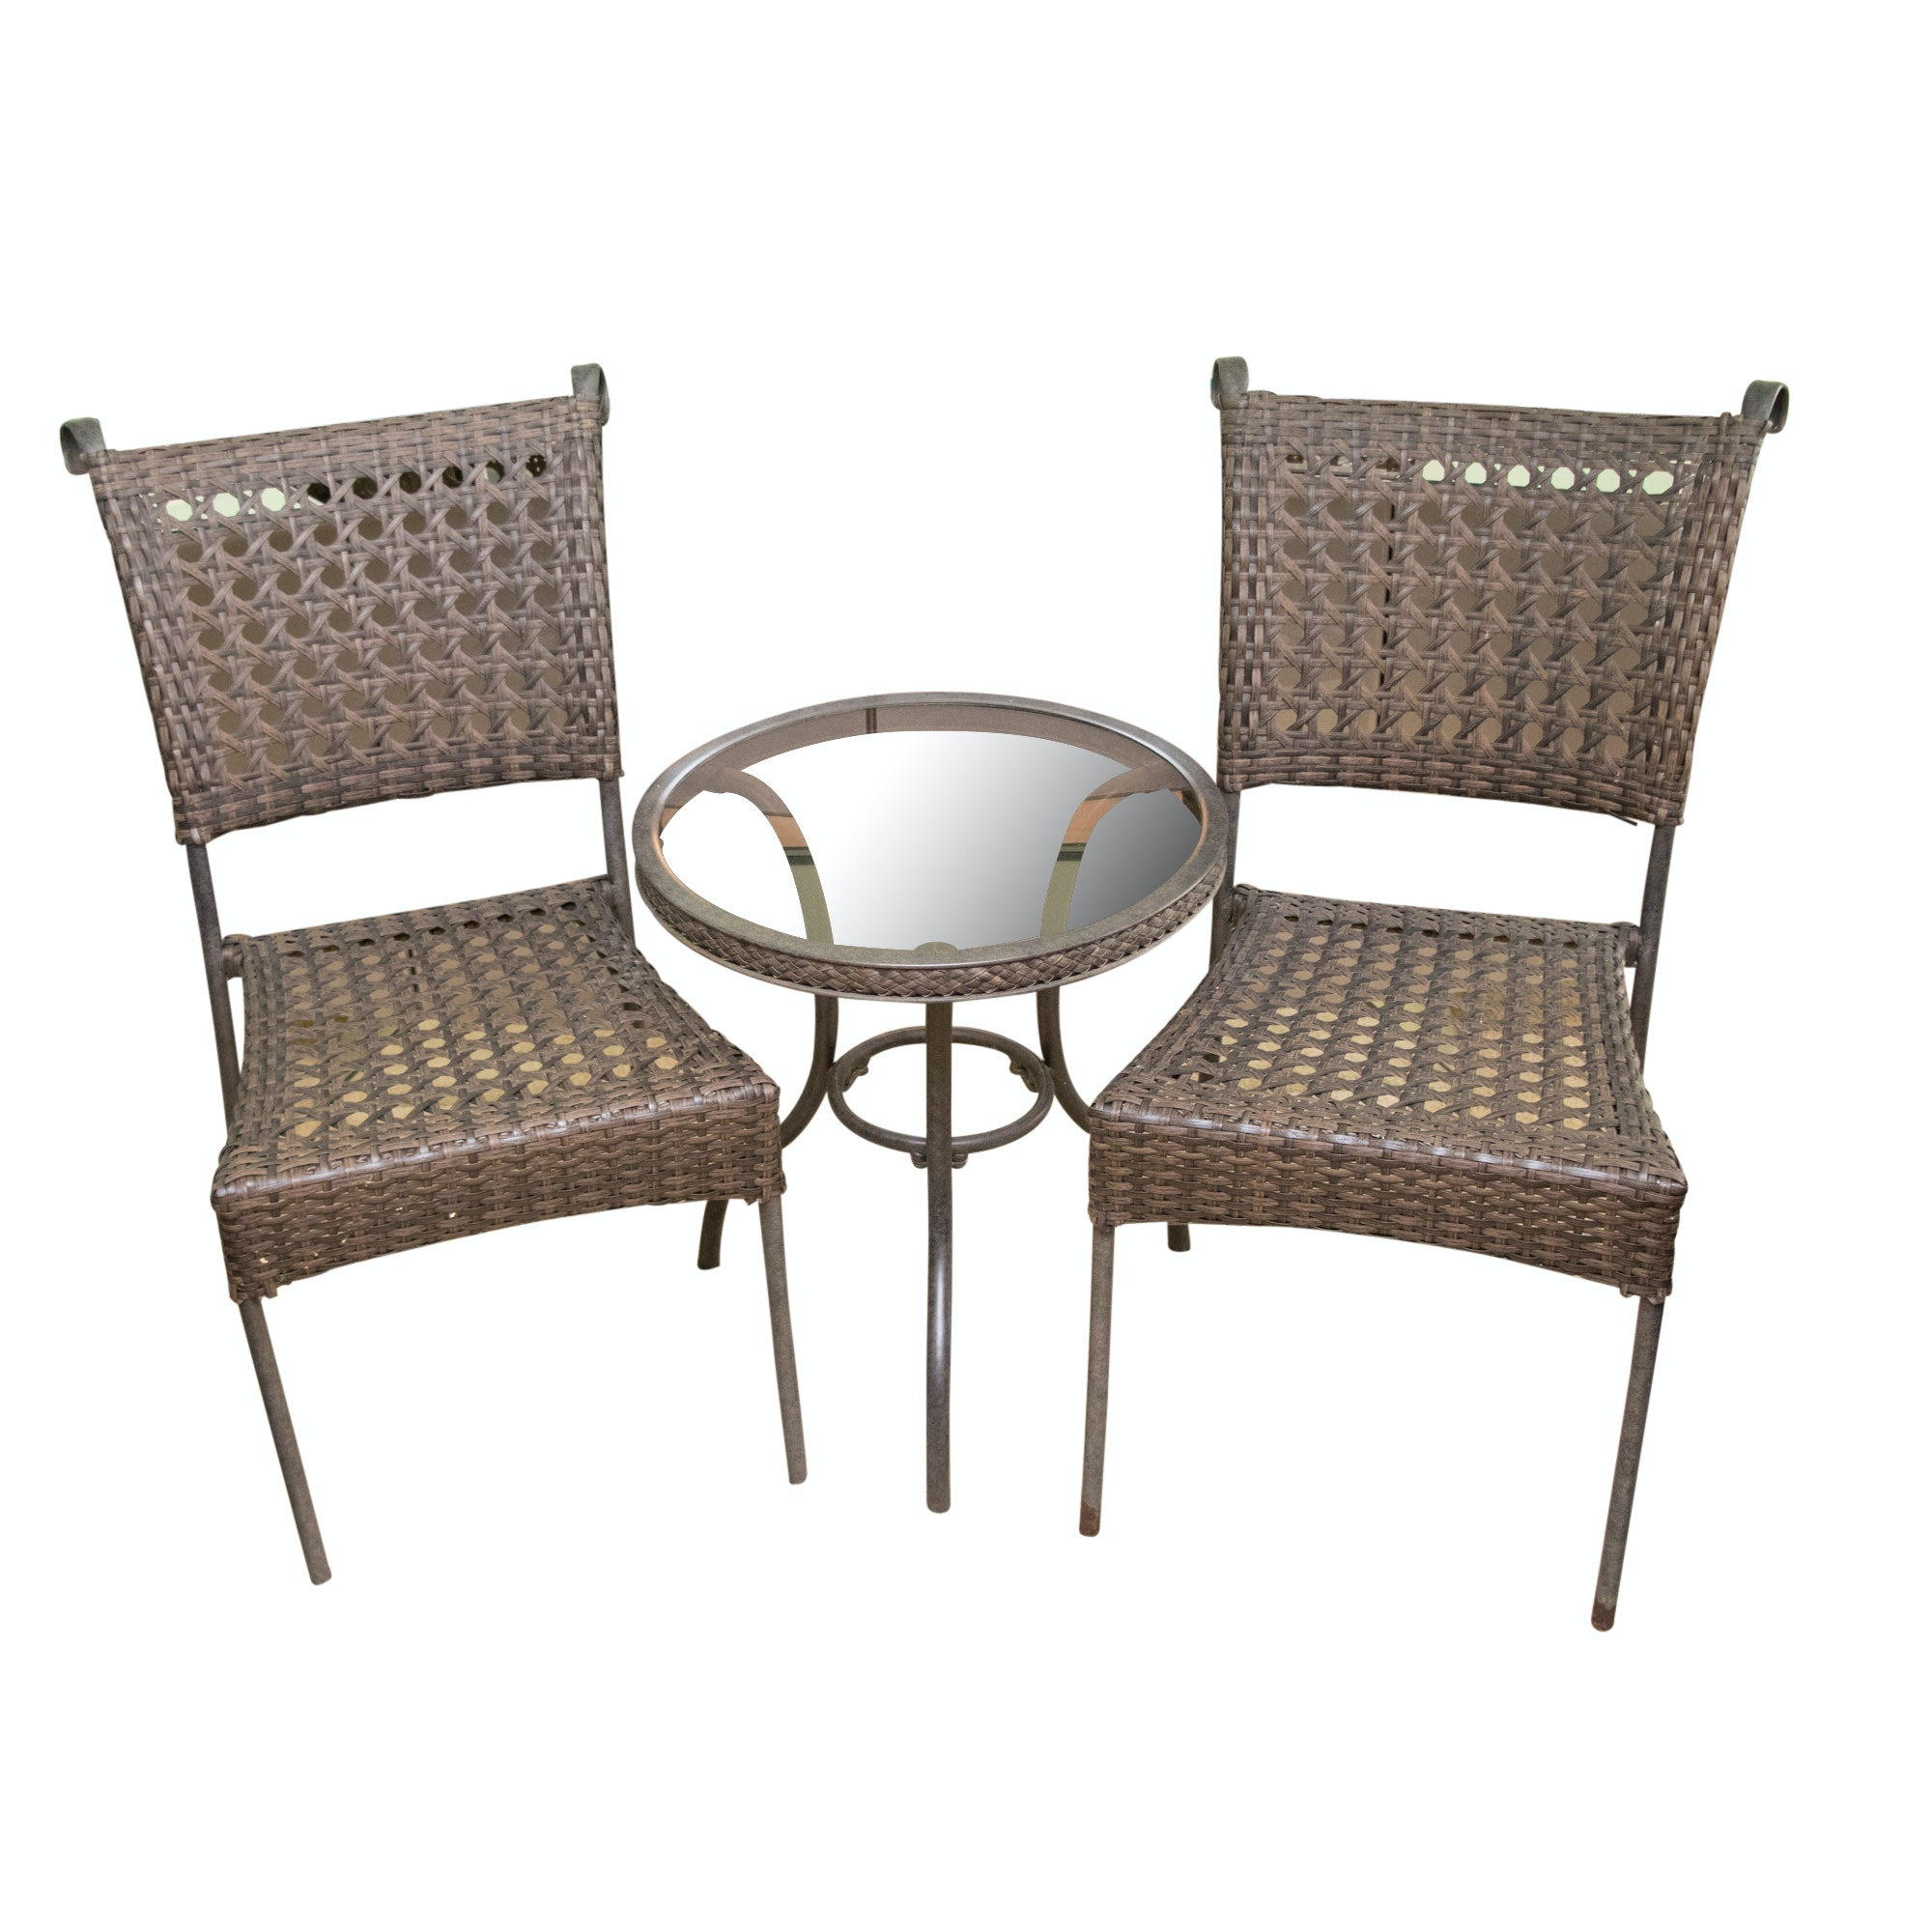 Contemporary Metal Table and Chairs